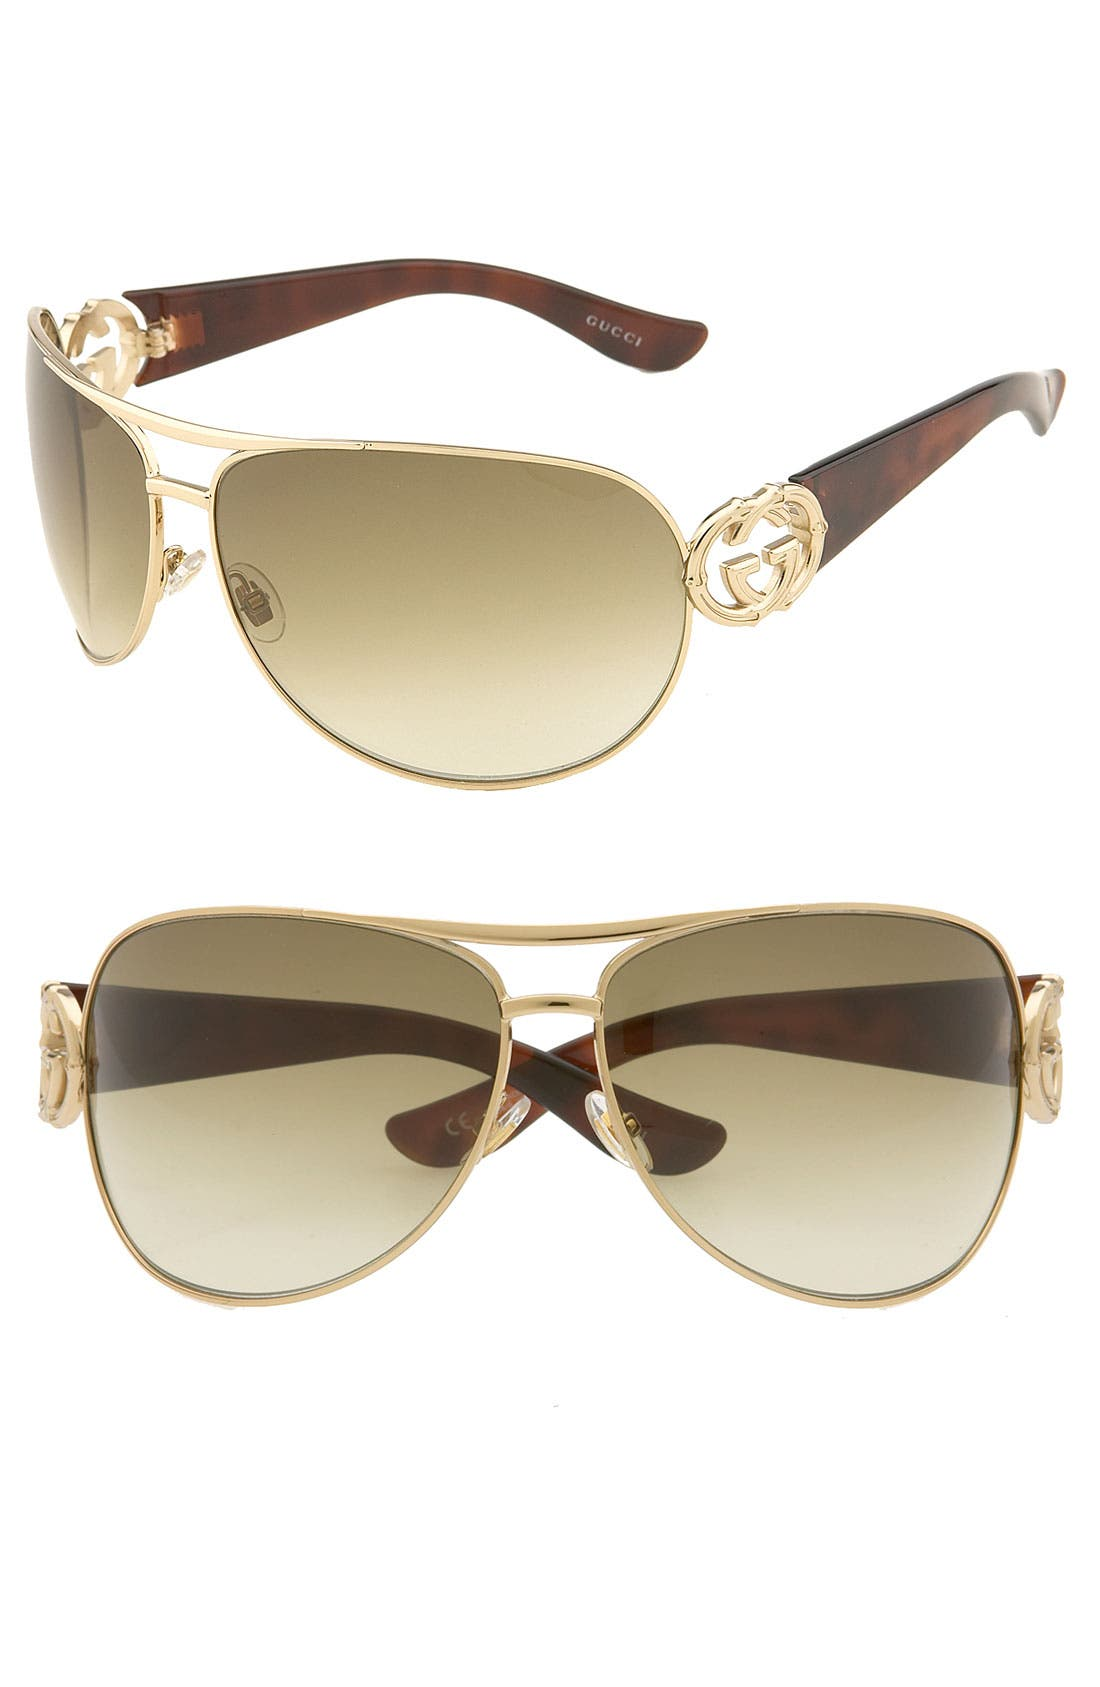 Main Image - Gucci Bamboo Logo Metal Aviator Sunglasses